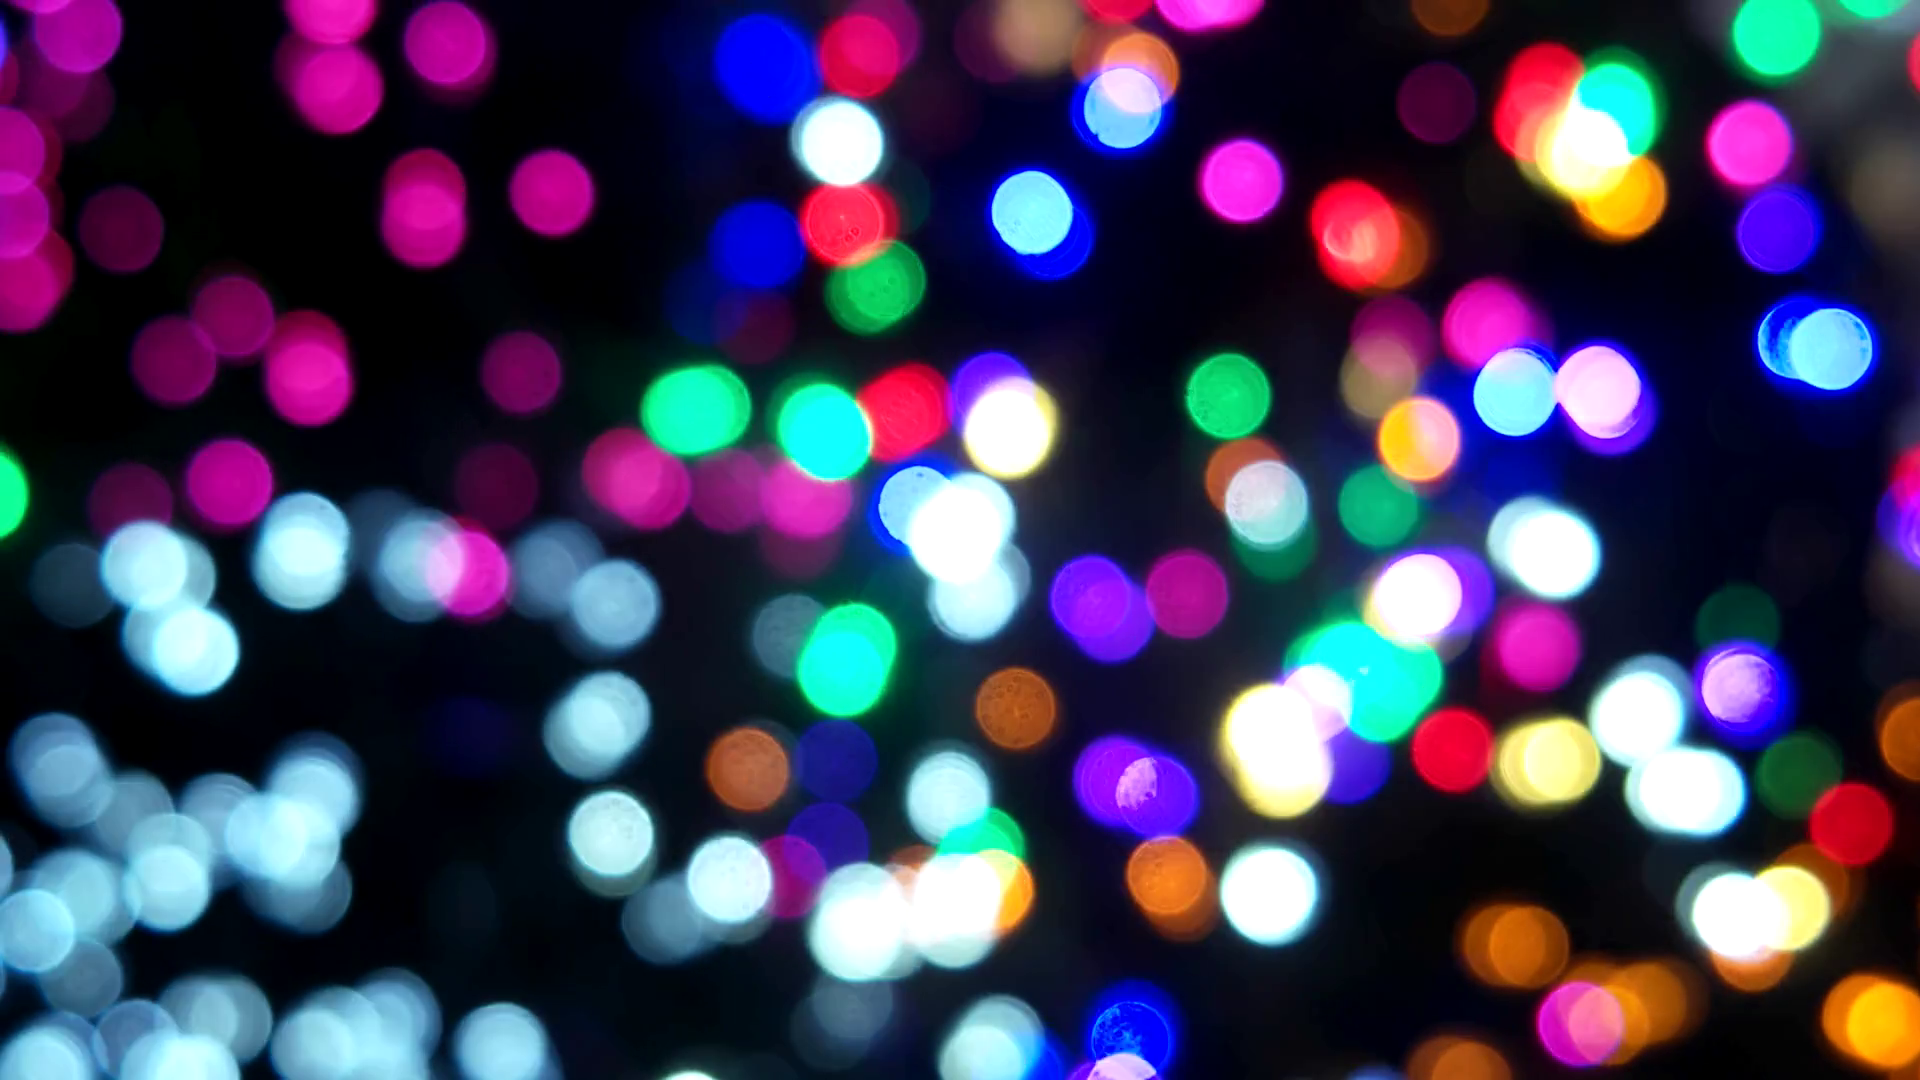 Colorful glowing lights. Bokeh background. Stock Video Footage ...